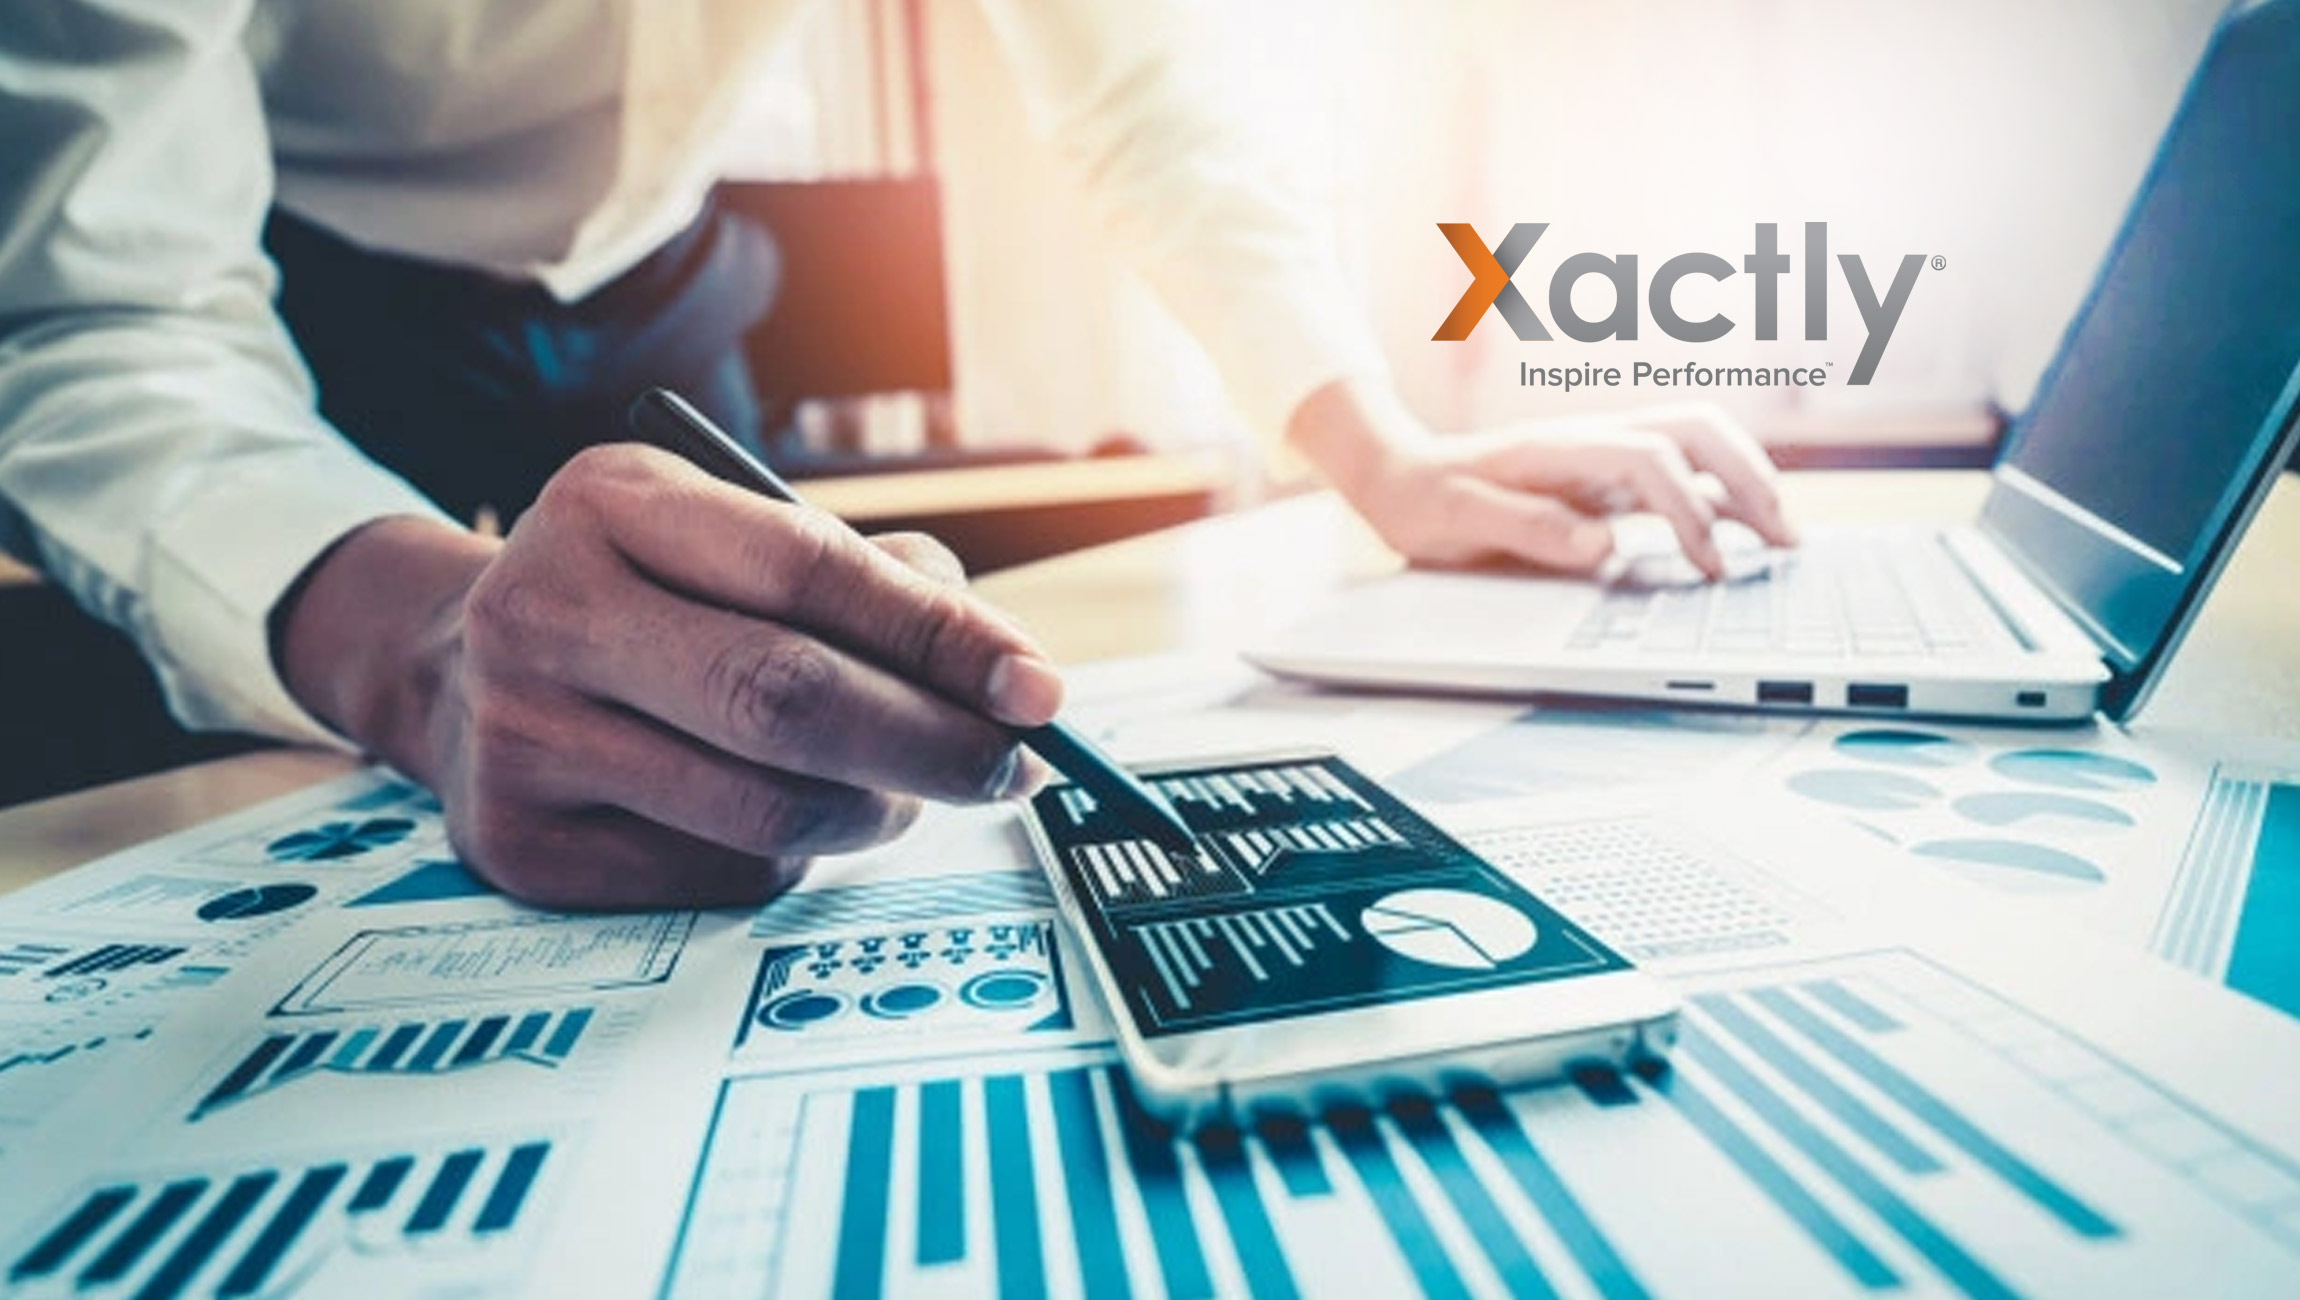 Xactly Launches Xactly Transform to Accelerate Revenue Transformation